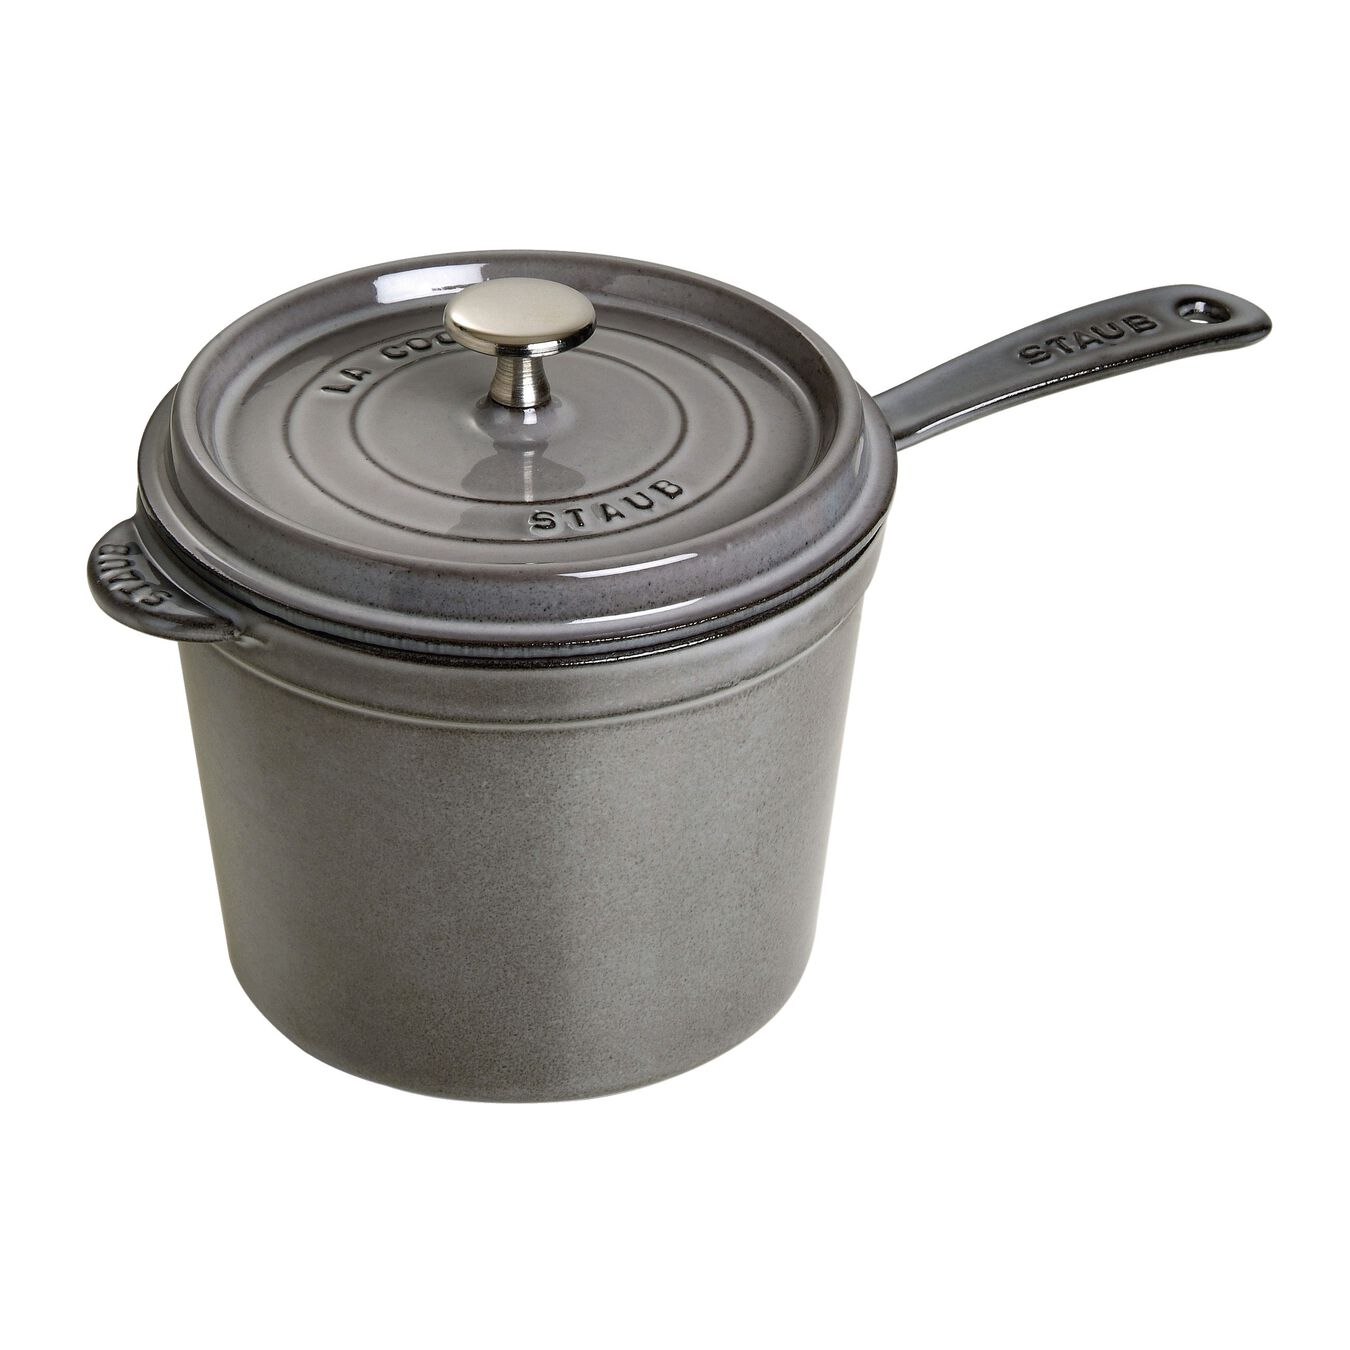 2,75 l Cast iron round Casserole, Graphite-Grey,,large 2